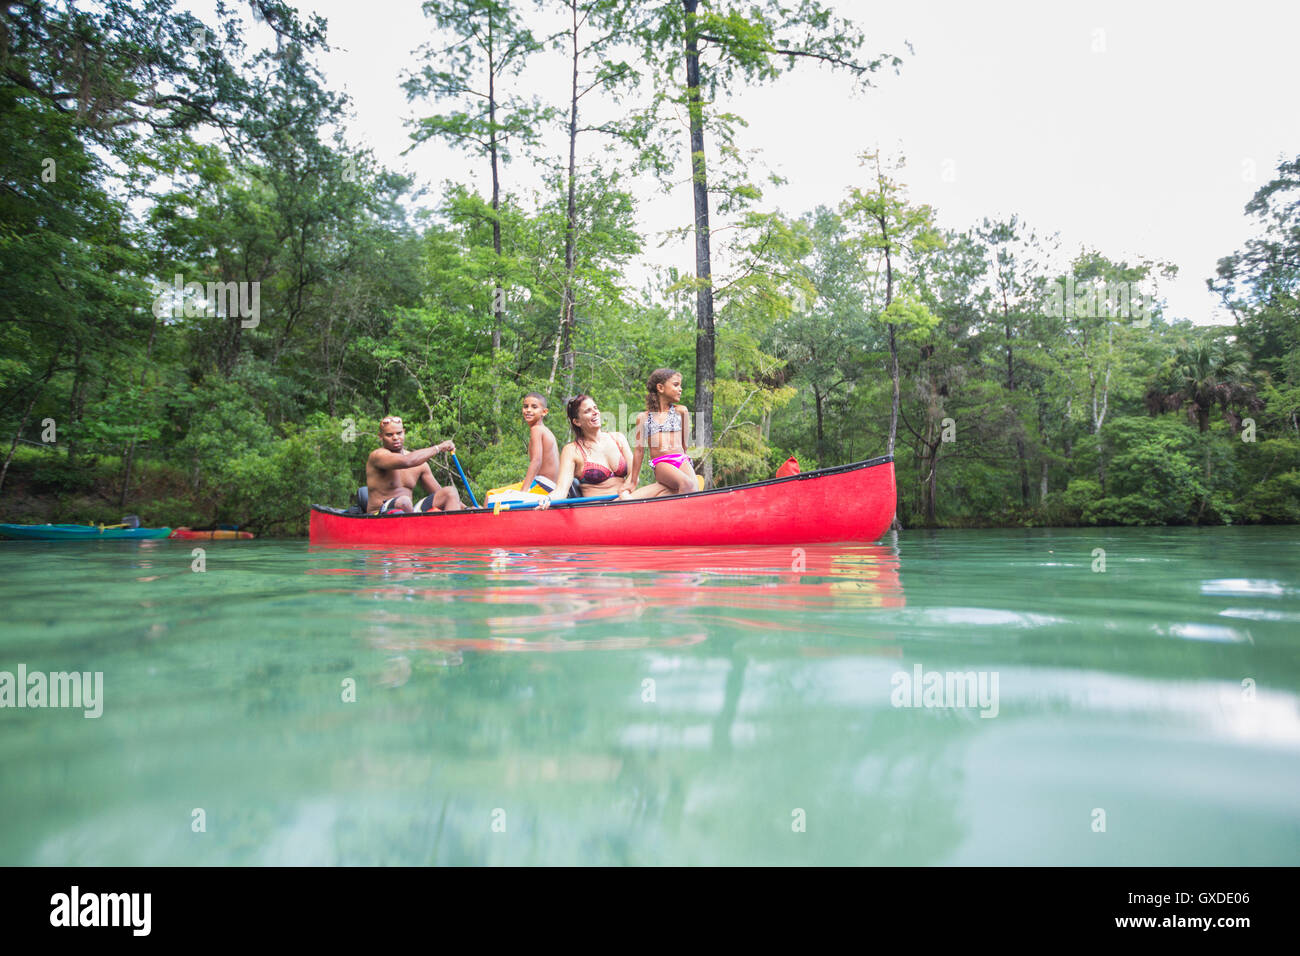 Family on a canoe trip together at Econfina Spring, Florida, USA - Stock Image